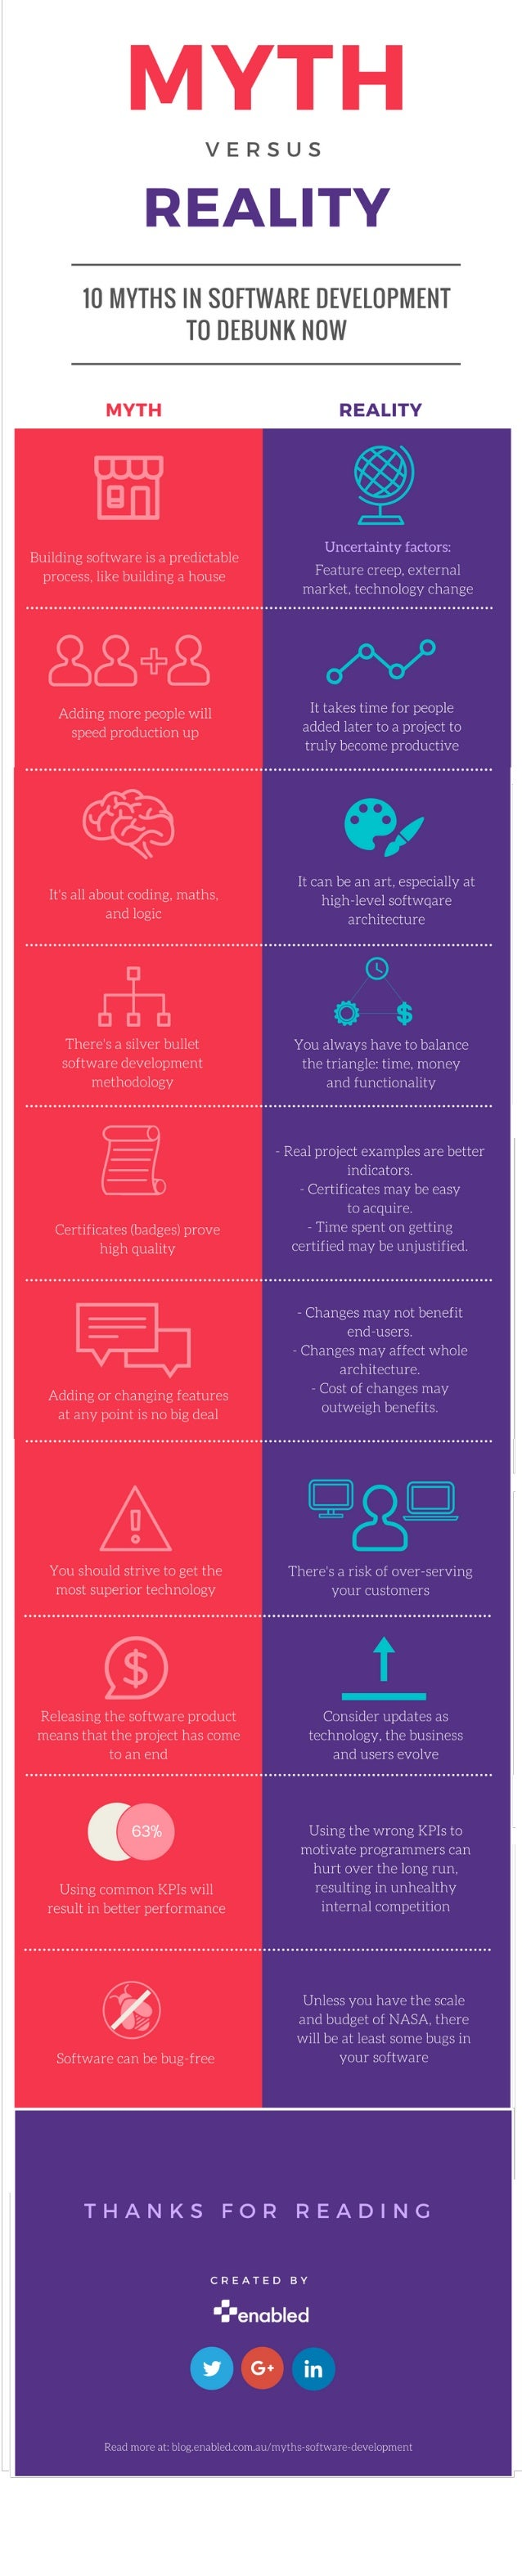 Infographic: Top 10 myths in software development to debunk now